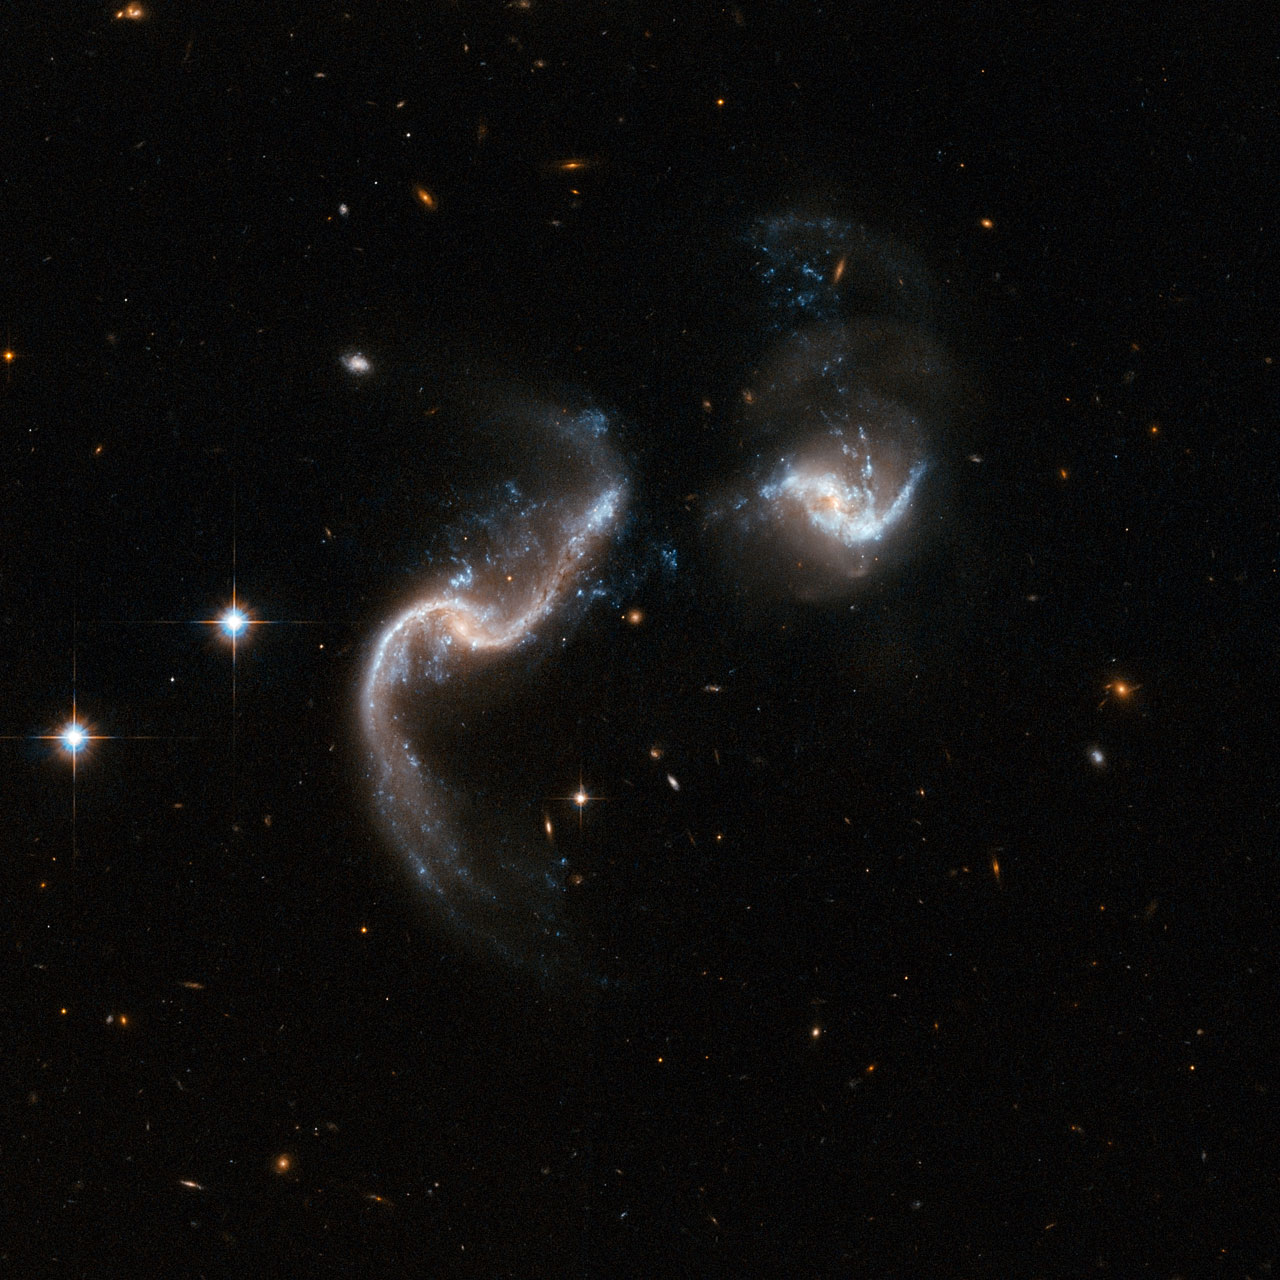 Arp 256, a colliding pair of galaxies